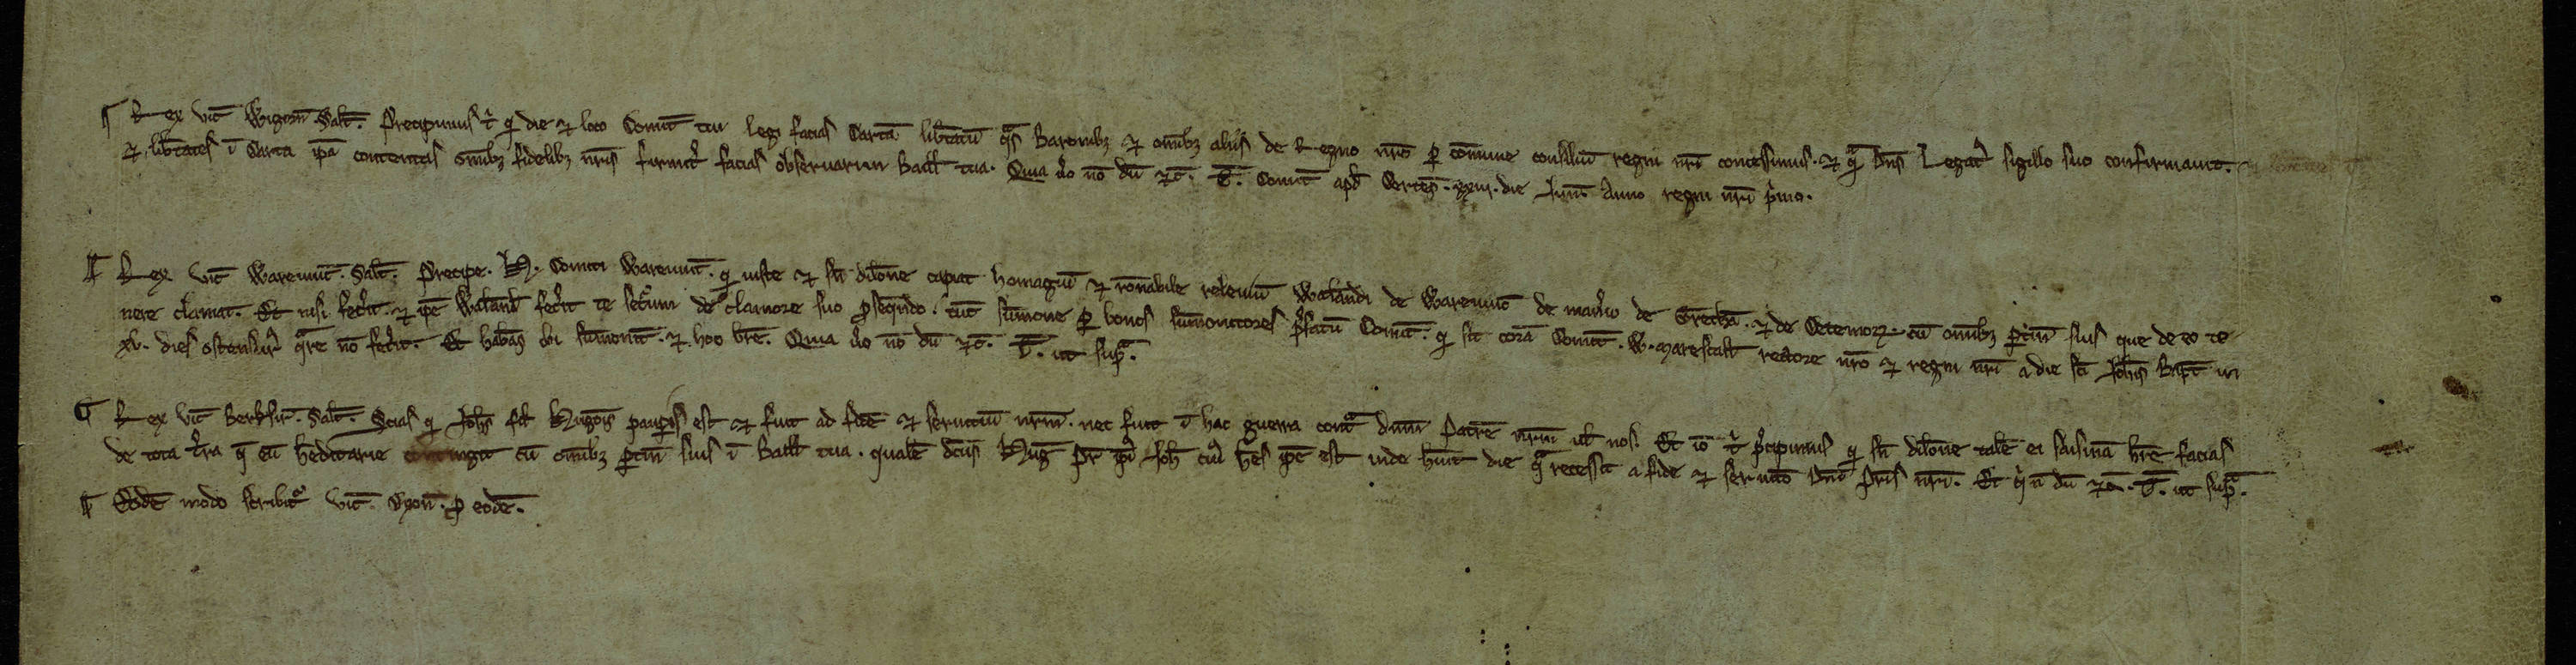 Study some royal orders from Henry III to Sheriff of Worcestershire